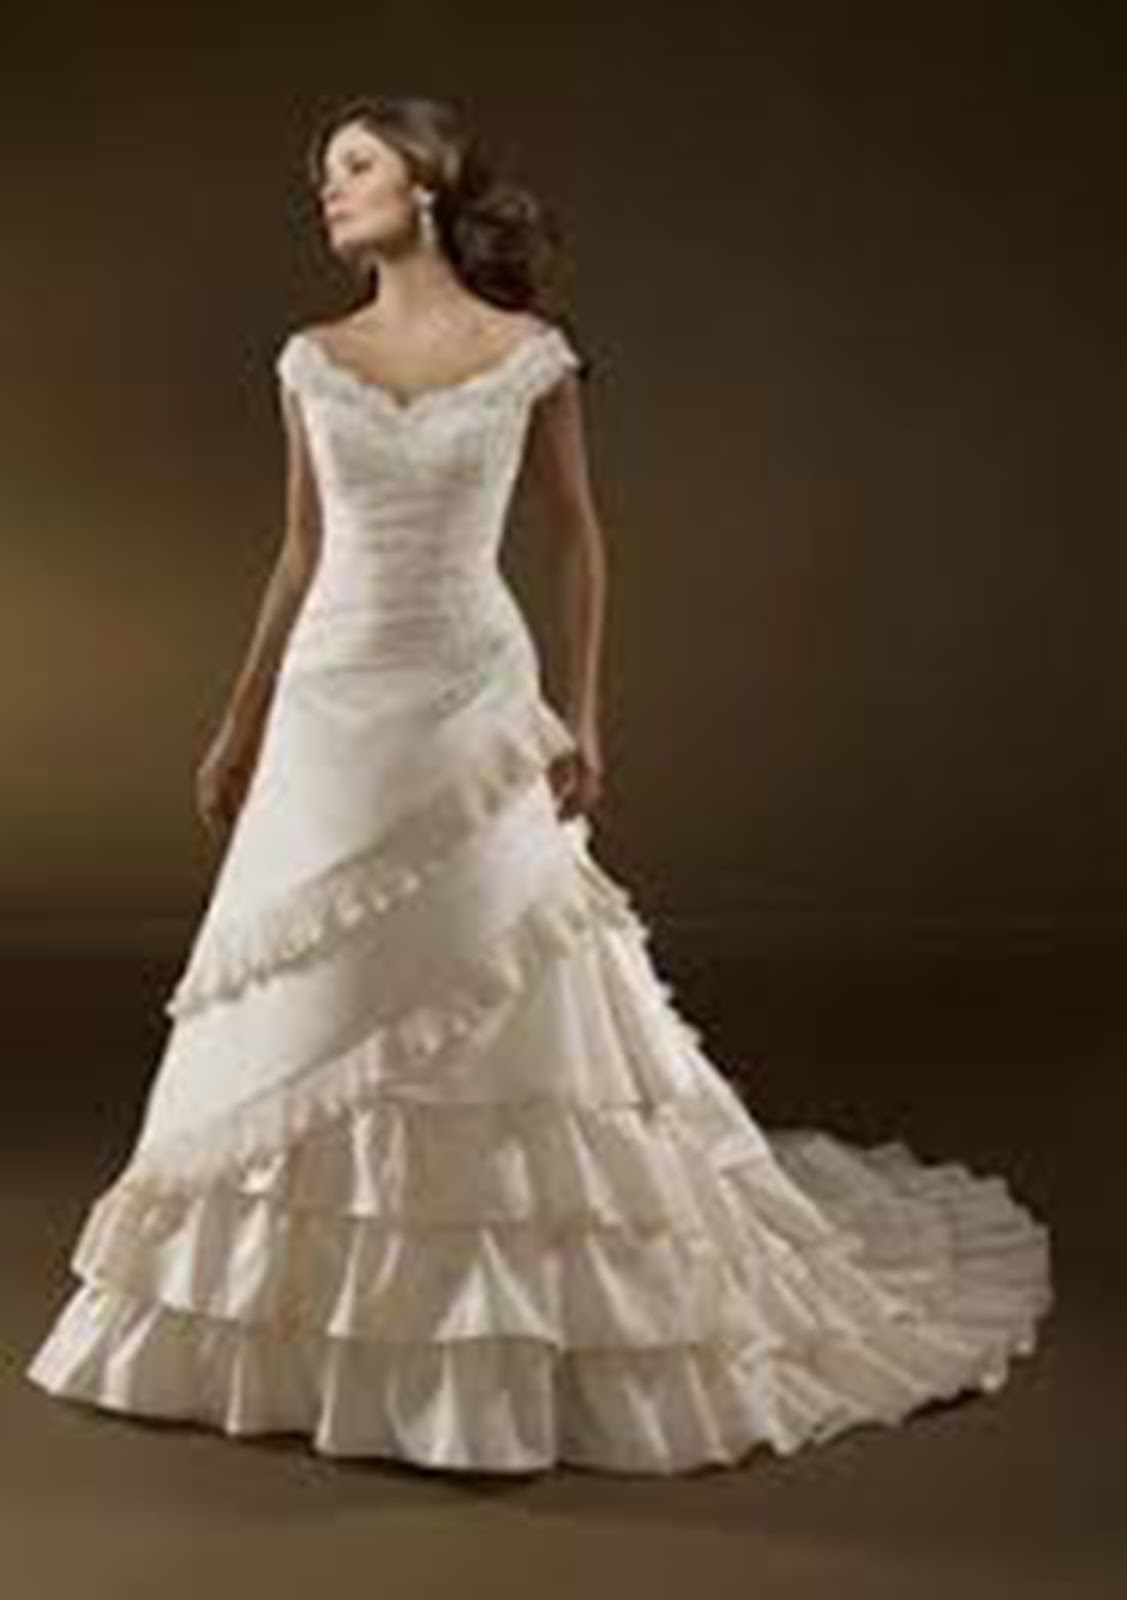 3 Pea Wedding Dress 1 5 Million Is Also Another Master Piece Which Amazing An Interesting To Know About